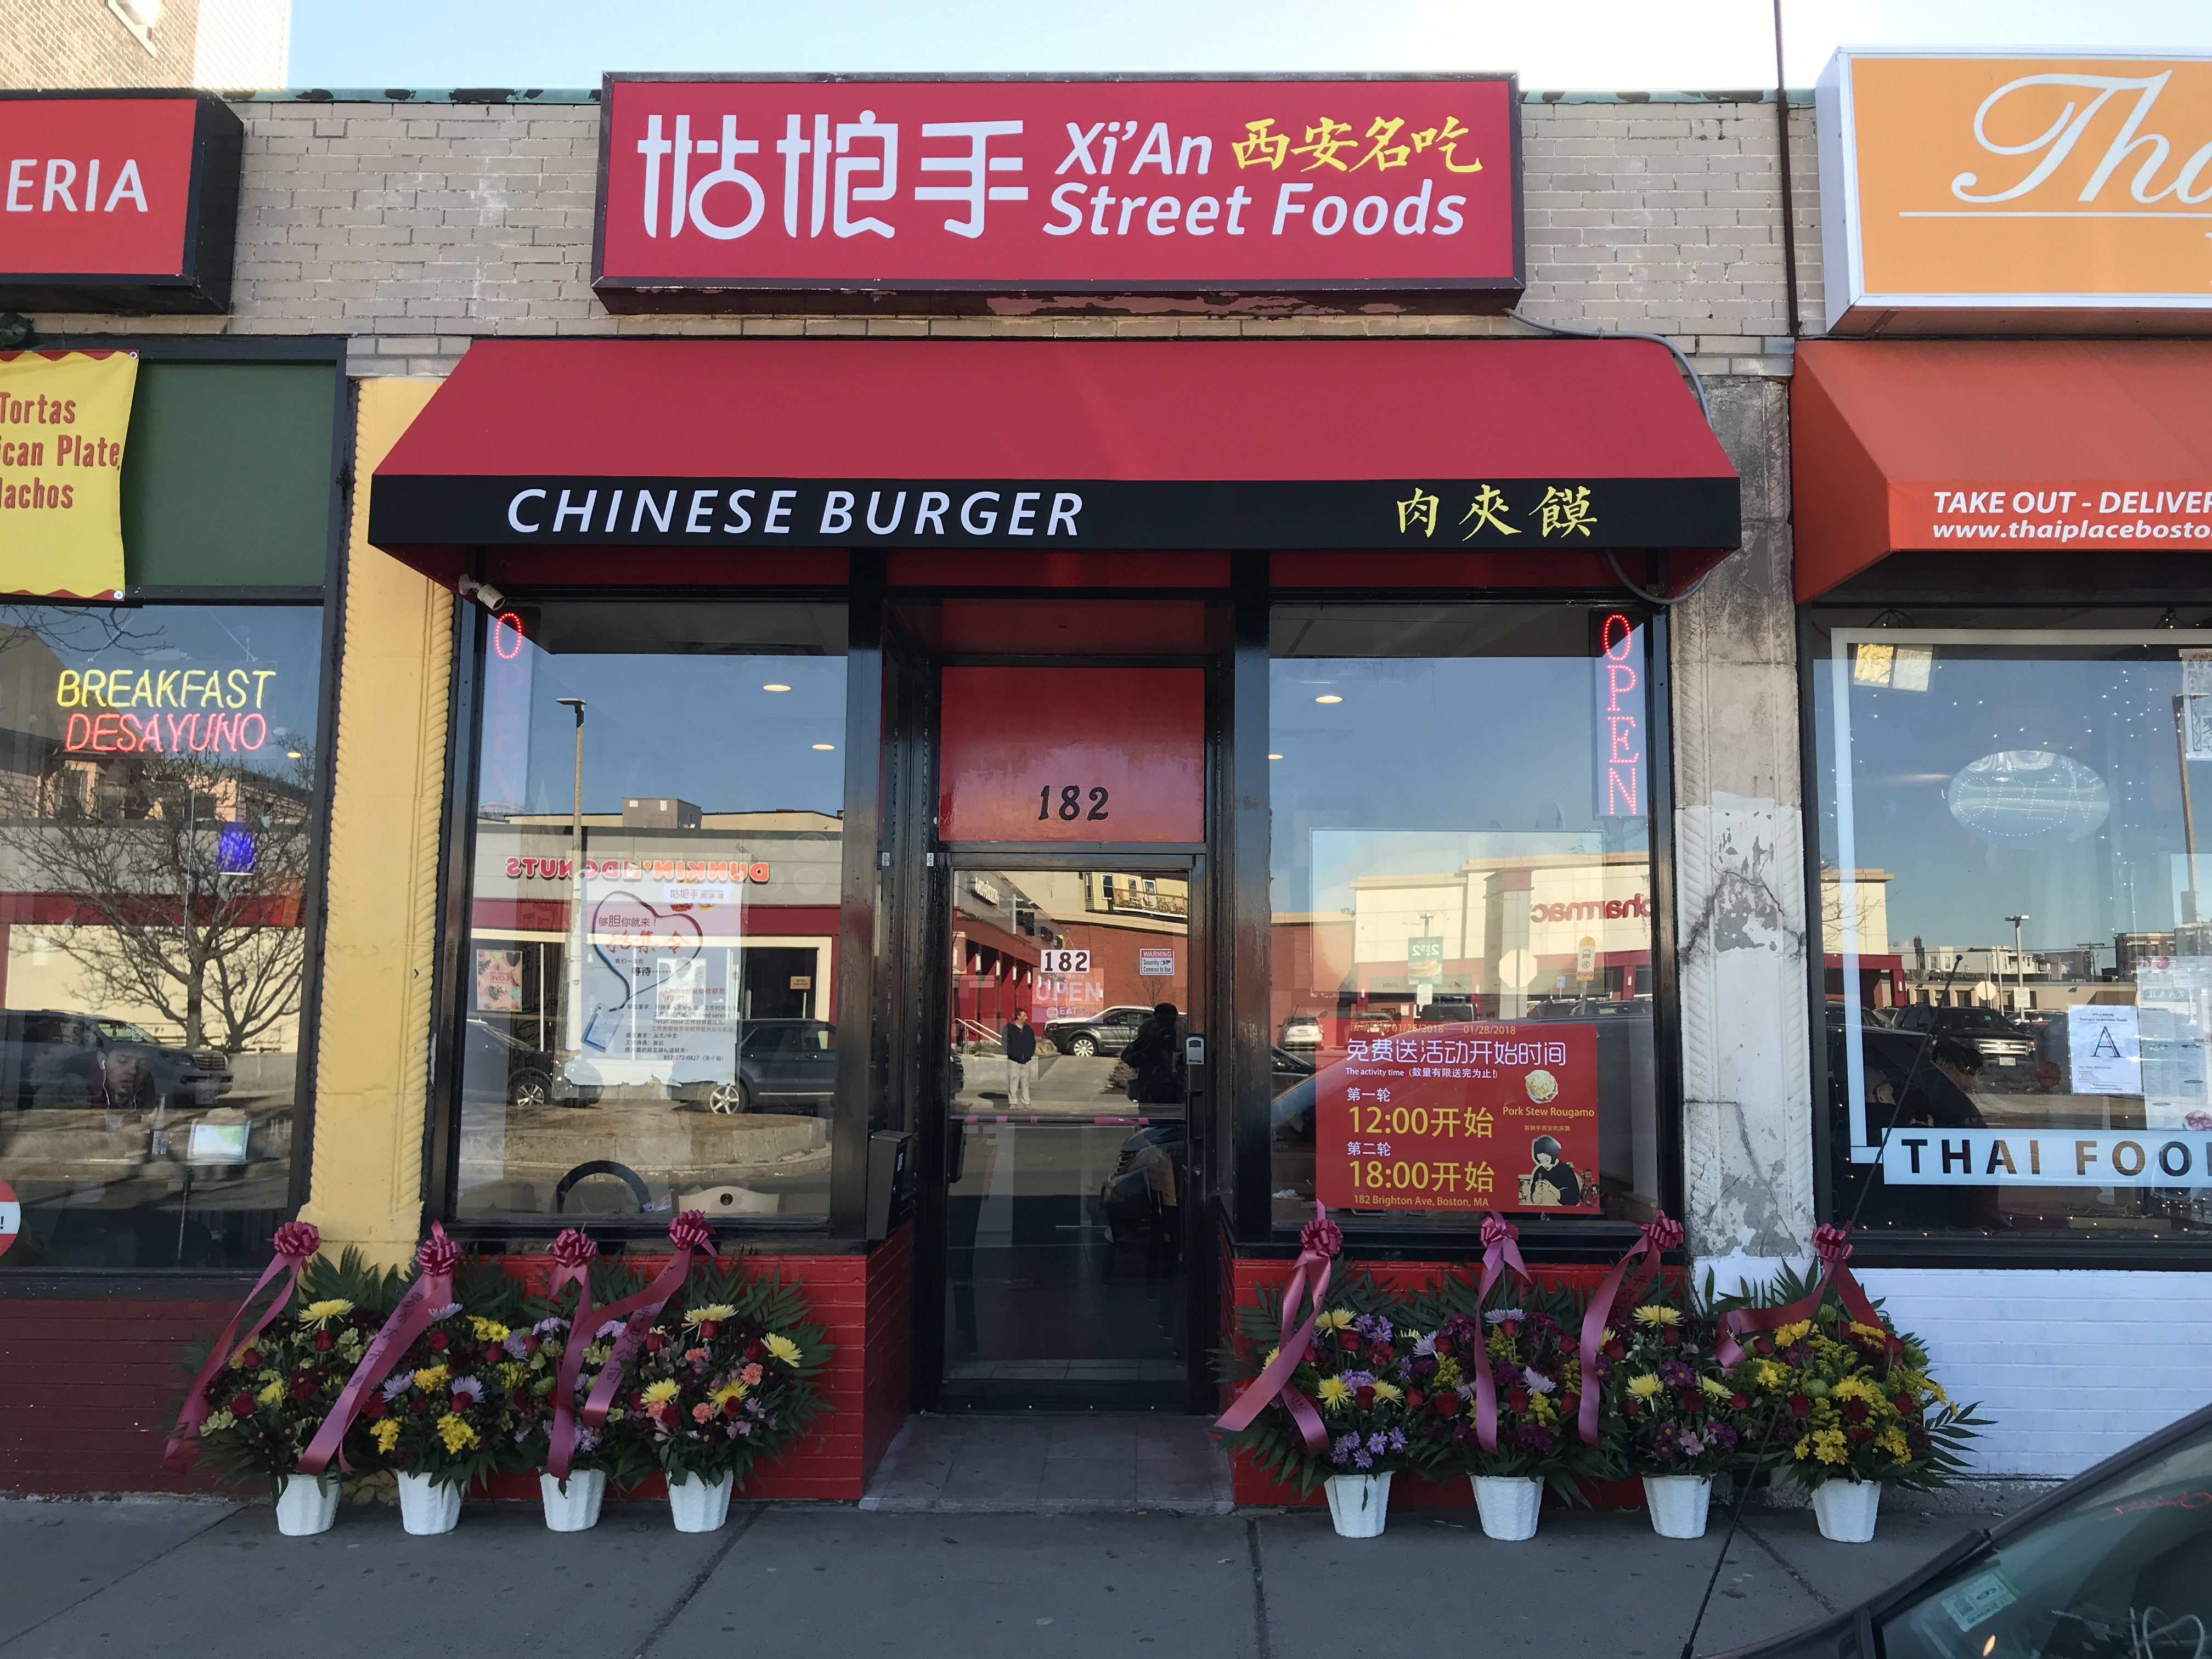 the facade of xi'an street foods on brighton avenue in allston